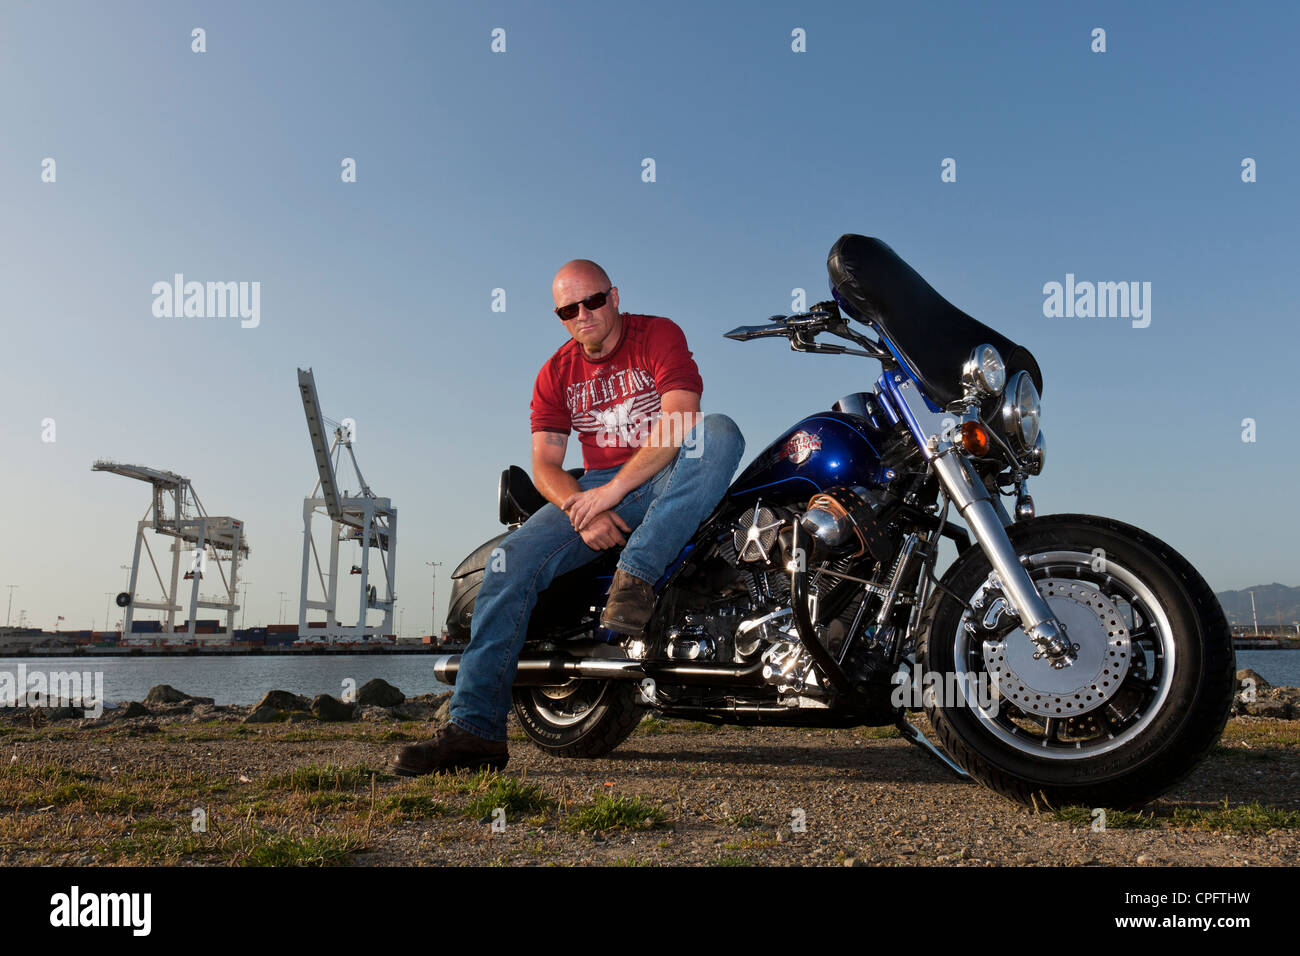 A Harley Davidson motorcyclist sitting on his bike - Stock Image